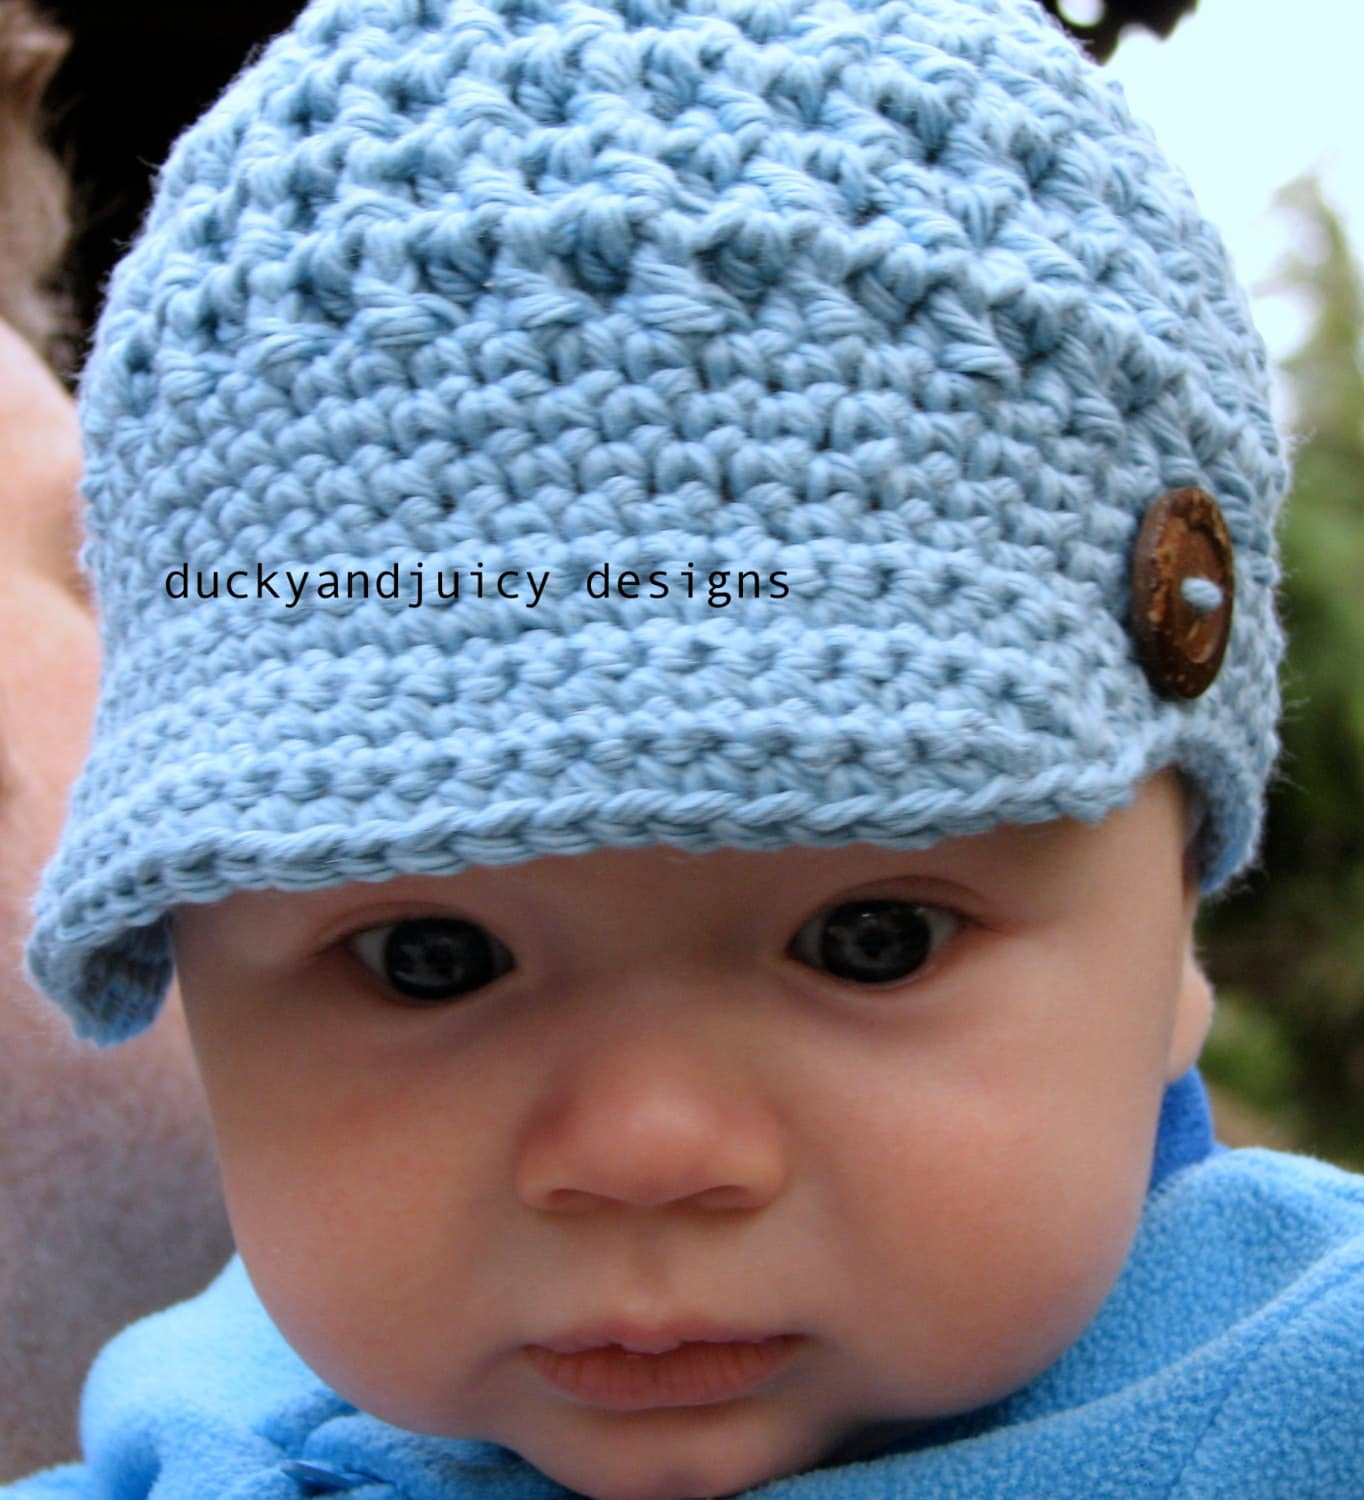 Crocheting A Baby Hat : Baby Crochet Hat Baby Boy Hat Baby Girl Hat by ducklyandjuicy